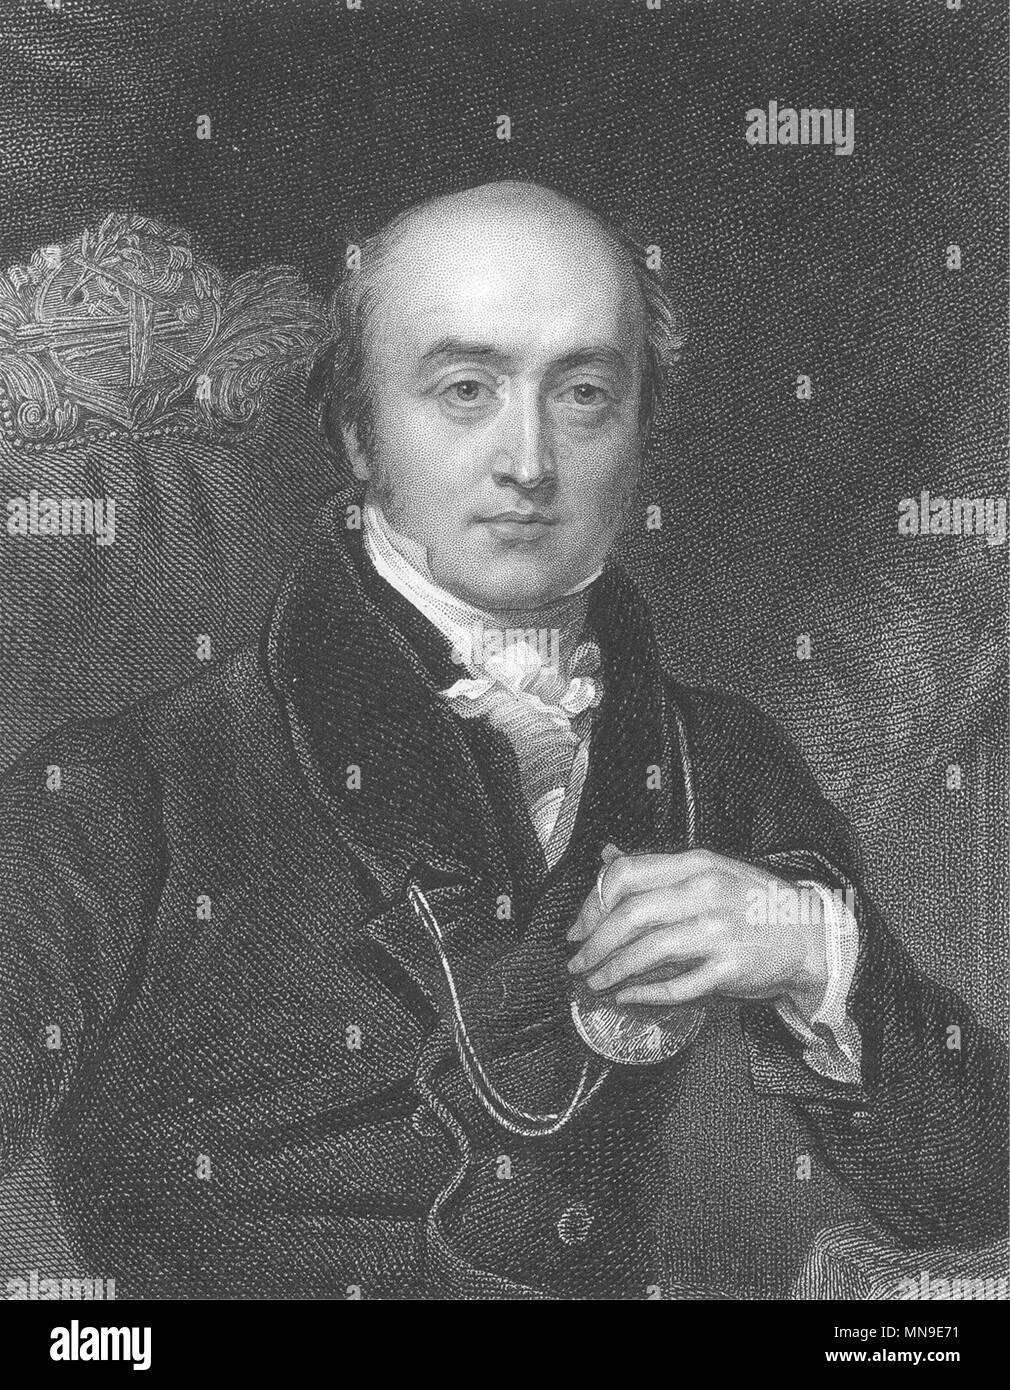 ARTISTS. Sir Thomas Lawrence, R. A. Landseer c1840 old antique print picture - Stock Image